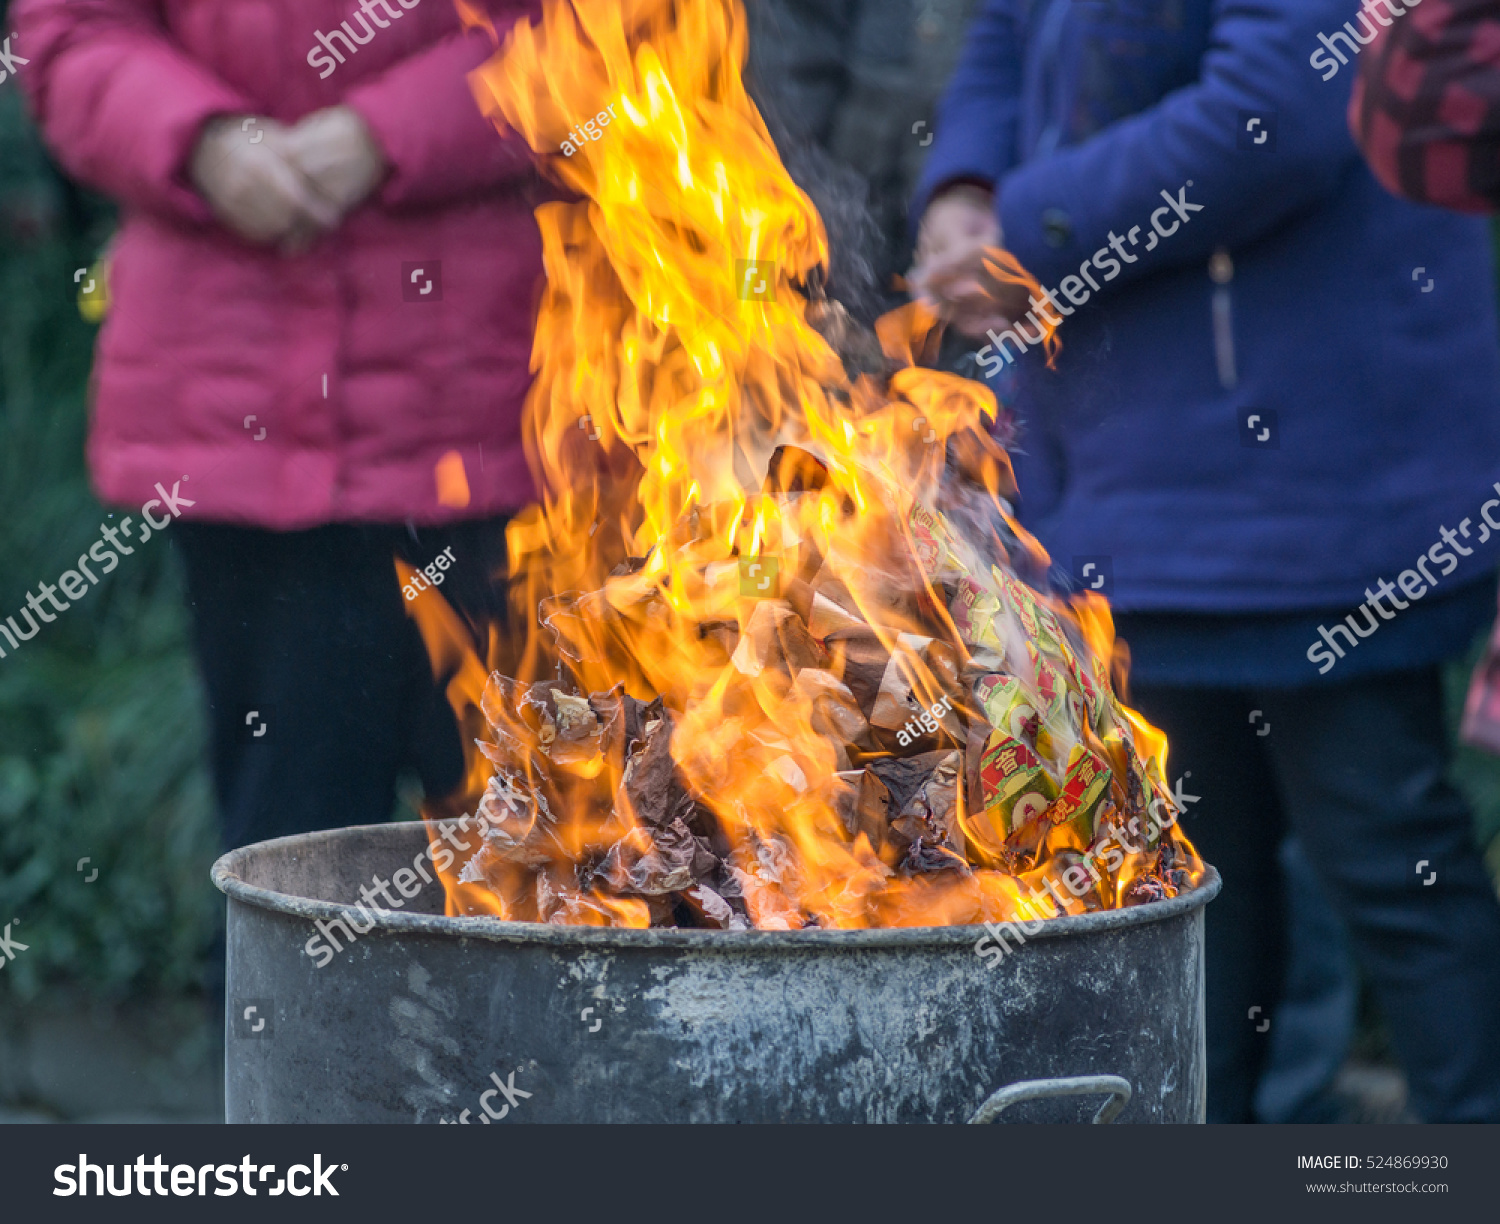 Royalty Free The Tradition Of Burning Paper Money 524869930 Stock